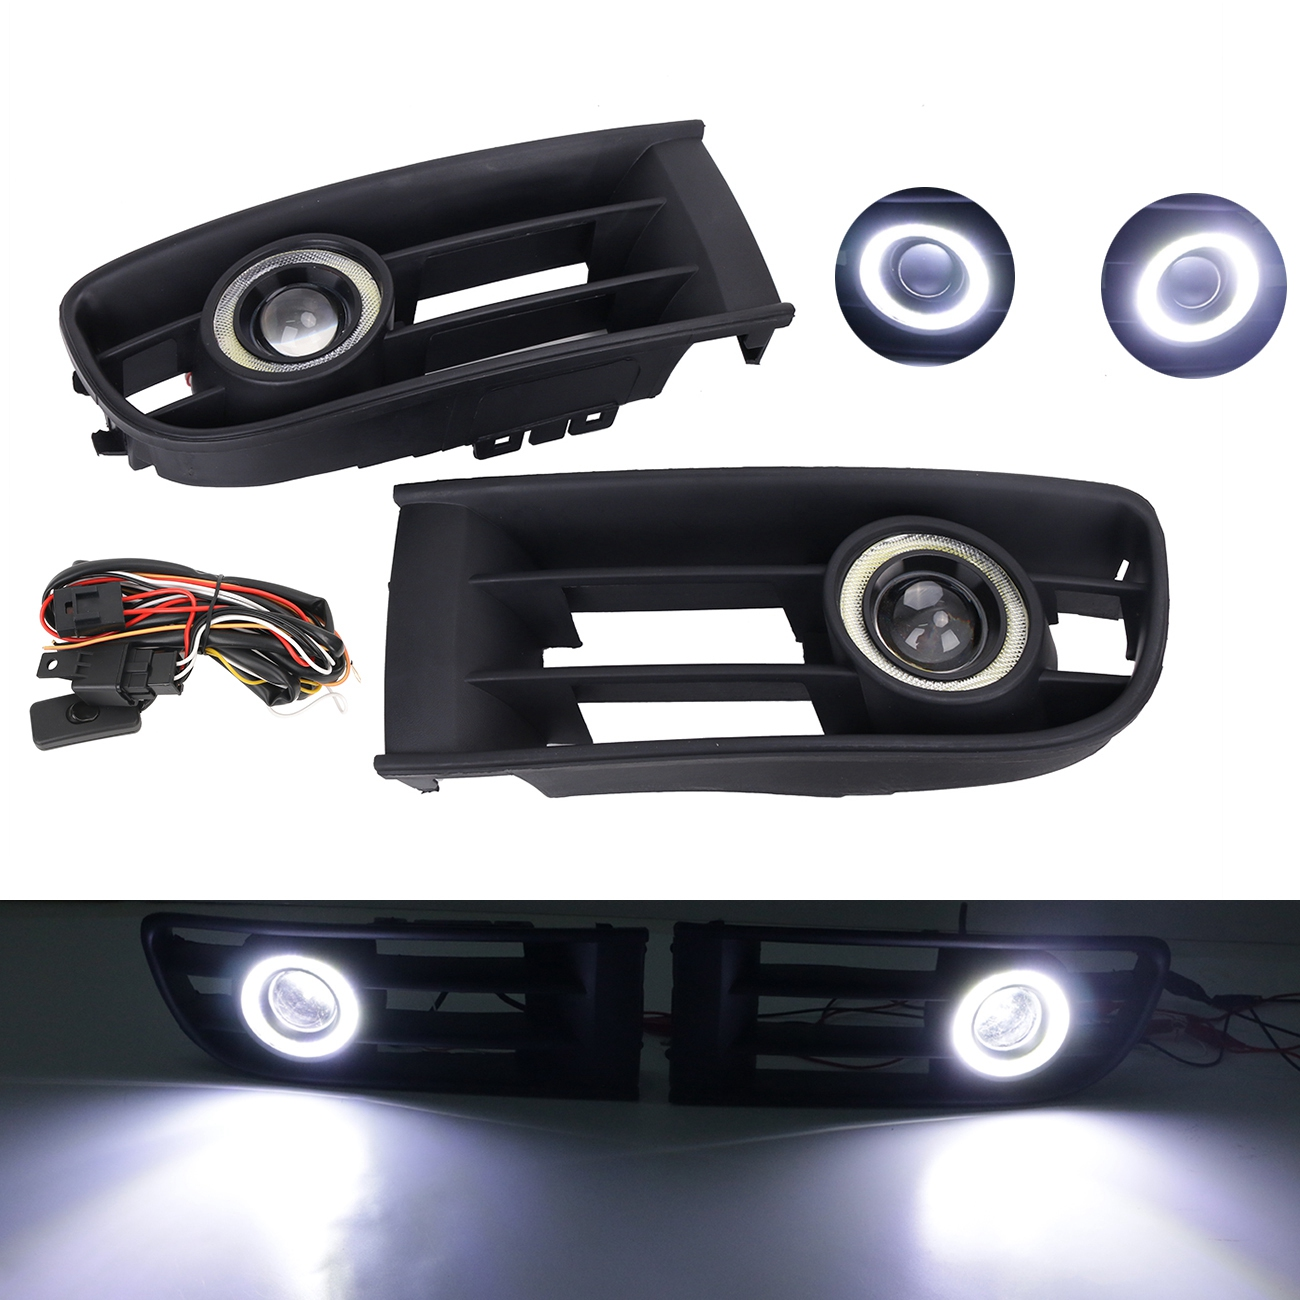 Front Bumper Fog Lamp Grille LED Convex lens Fog Light Angel Eyes For VW Polo 2001 2002 2003 2004 2005 DRL Car Accessory #P364 front bumper fog lamp grille led convex lens fog light angel eyes for vw polo 2001 2002 2003 2004 2005 drl car accessory p364